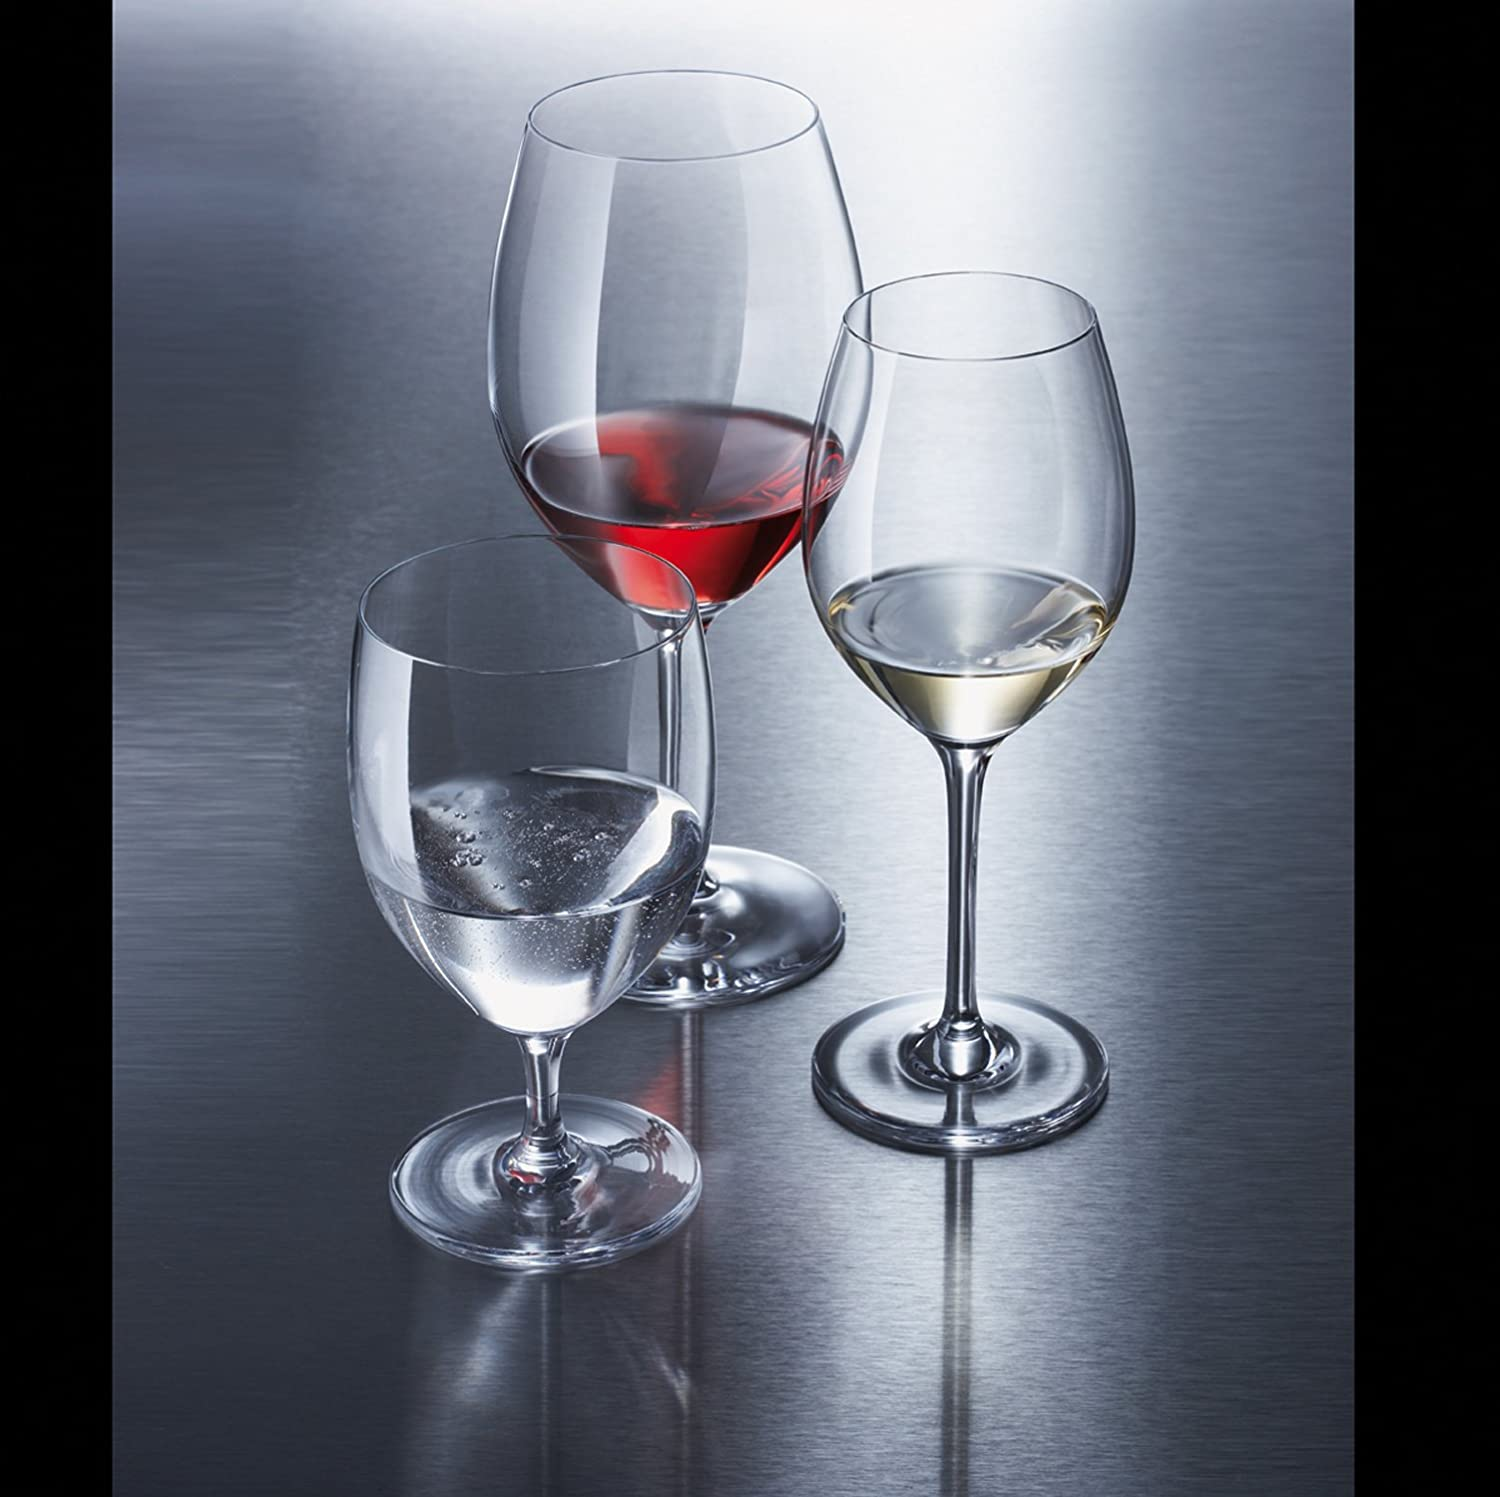 schott zwiesel tritan crystal glass stemware cru classic collection bordeaux 27 ebay. Black Bedroom Furniture Sets. Home Design Ideas